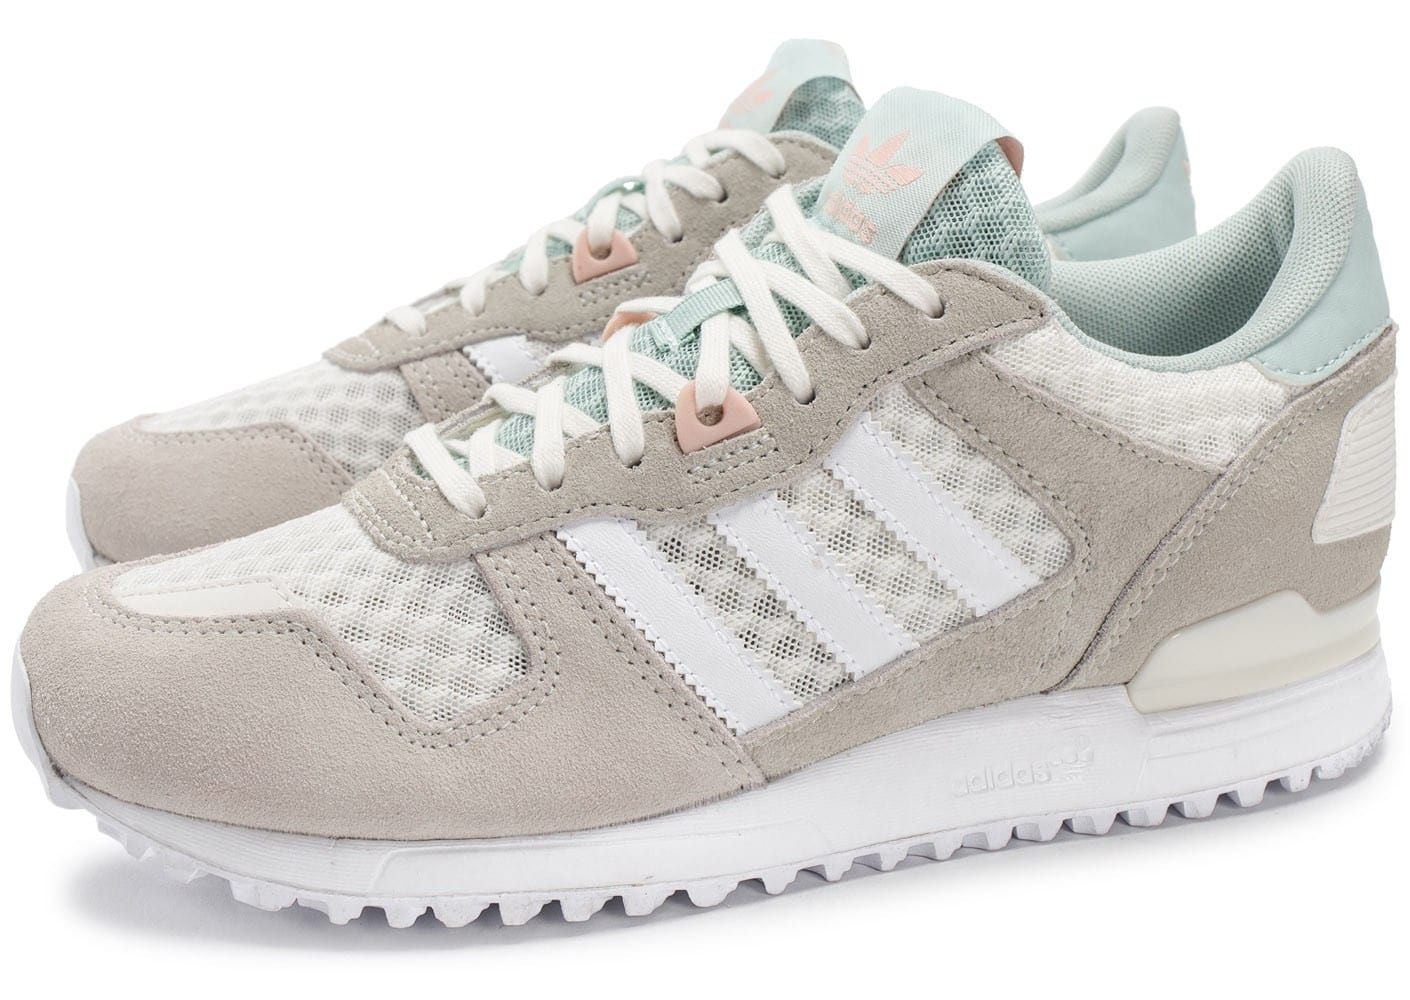 adidas Zx Zx Zx W grise et blanche Chaussures adidas